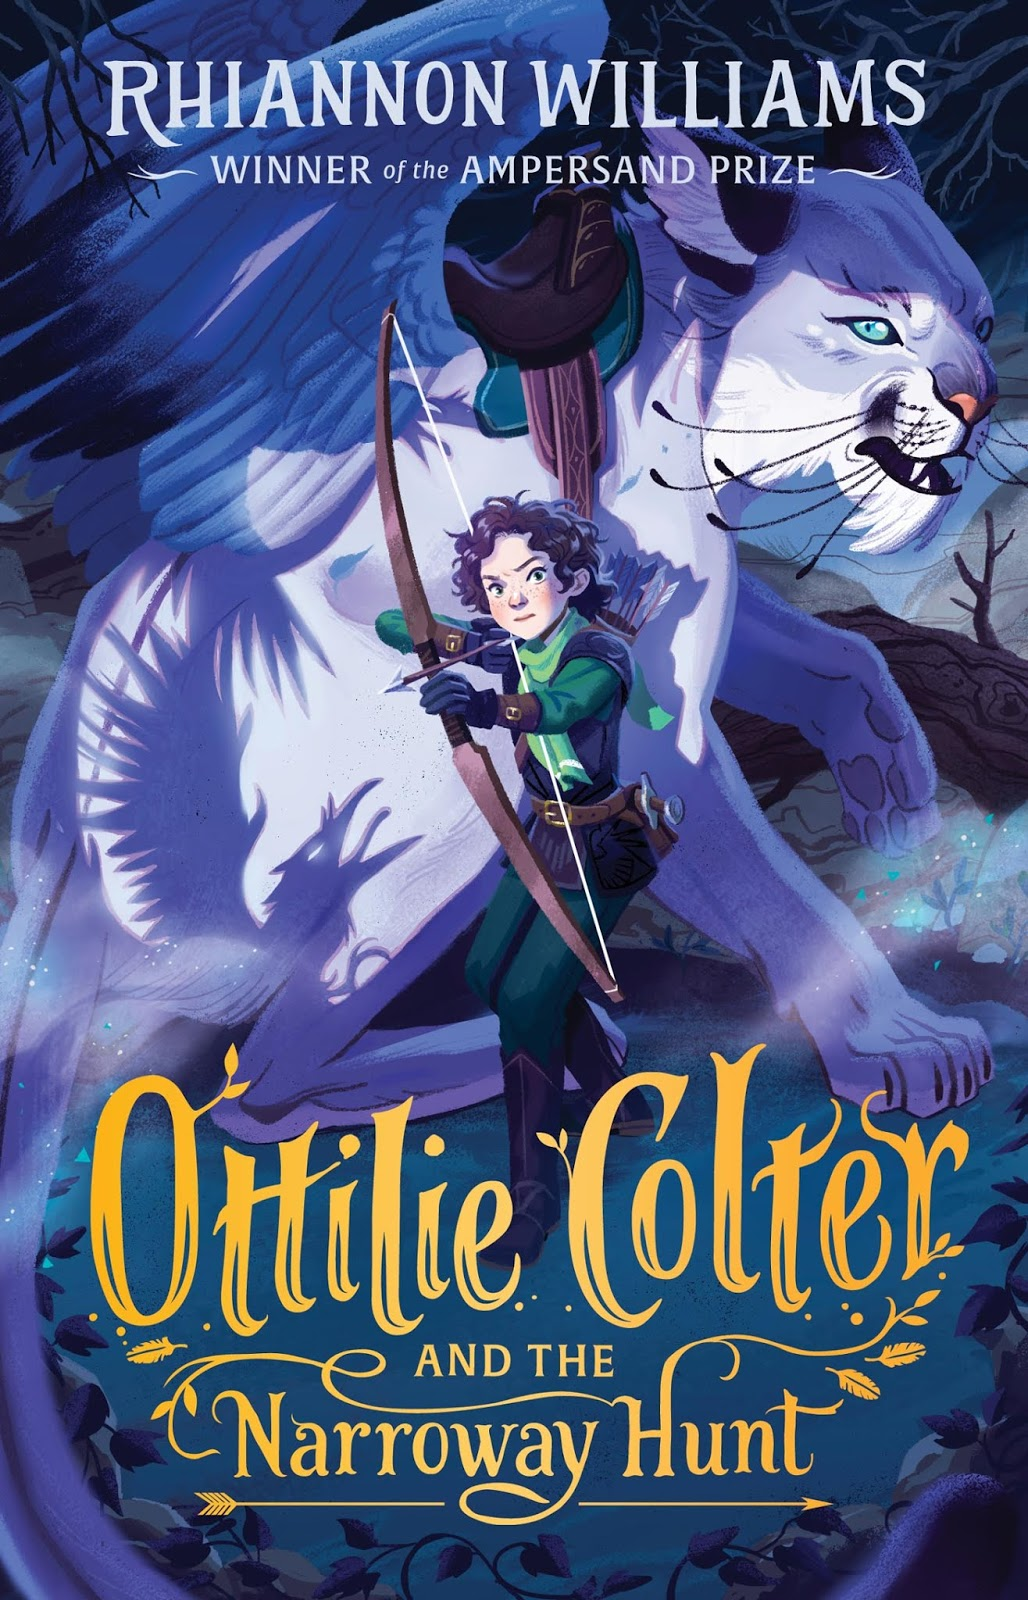 Ottilie Colter and the Narrowway hunt book cover